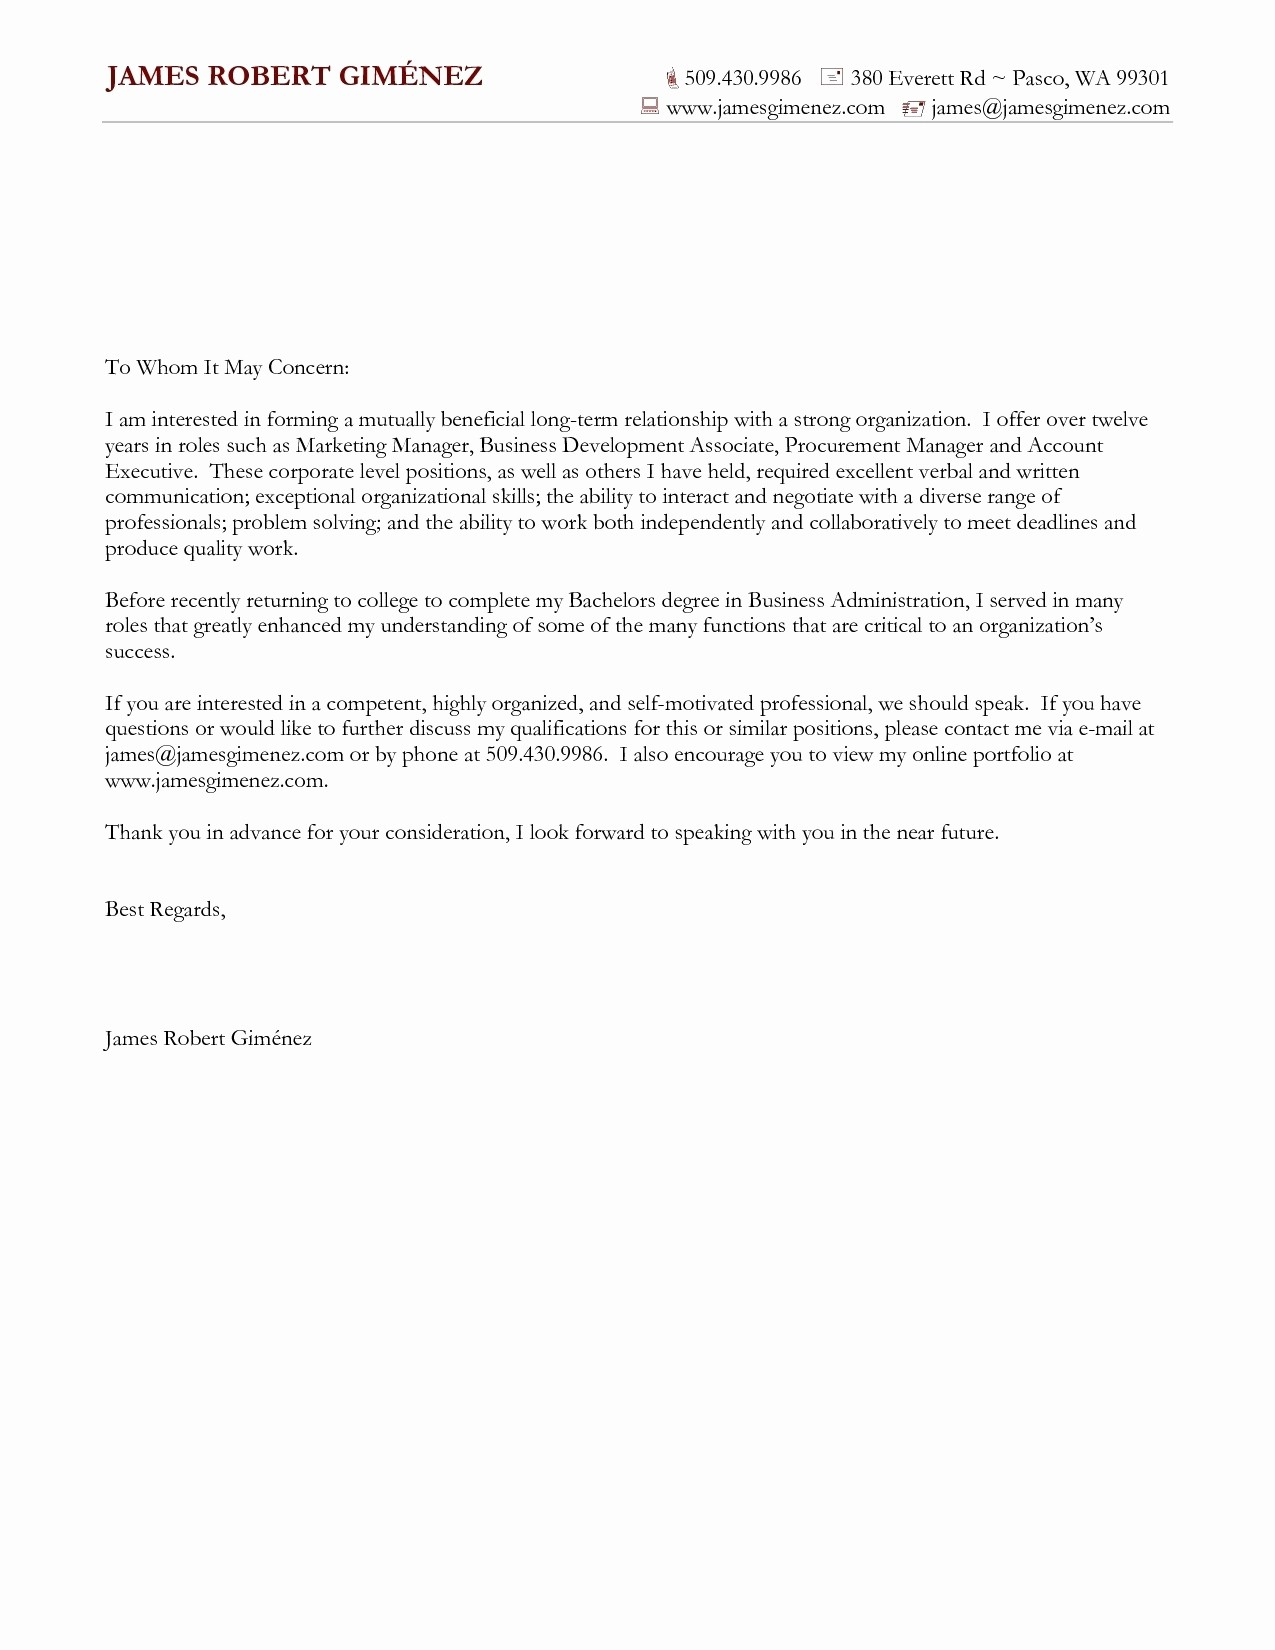 Resume and Cover Letter Template Beautiful Mock Cover Letter